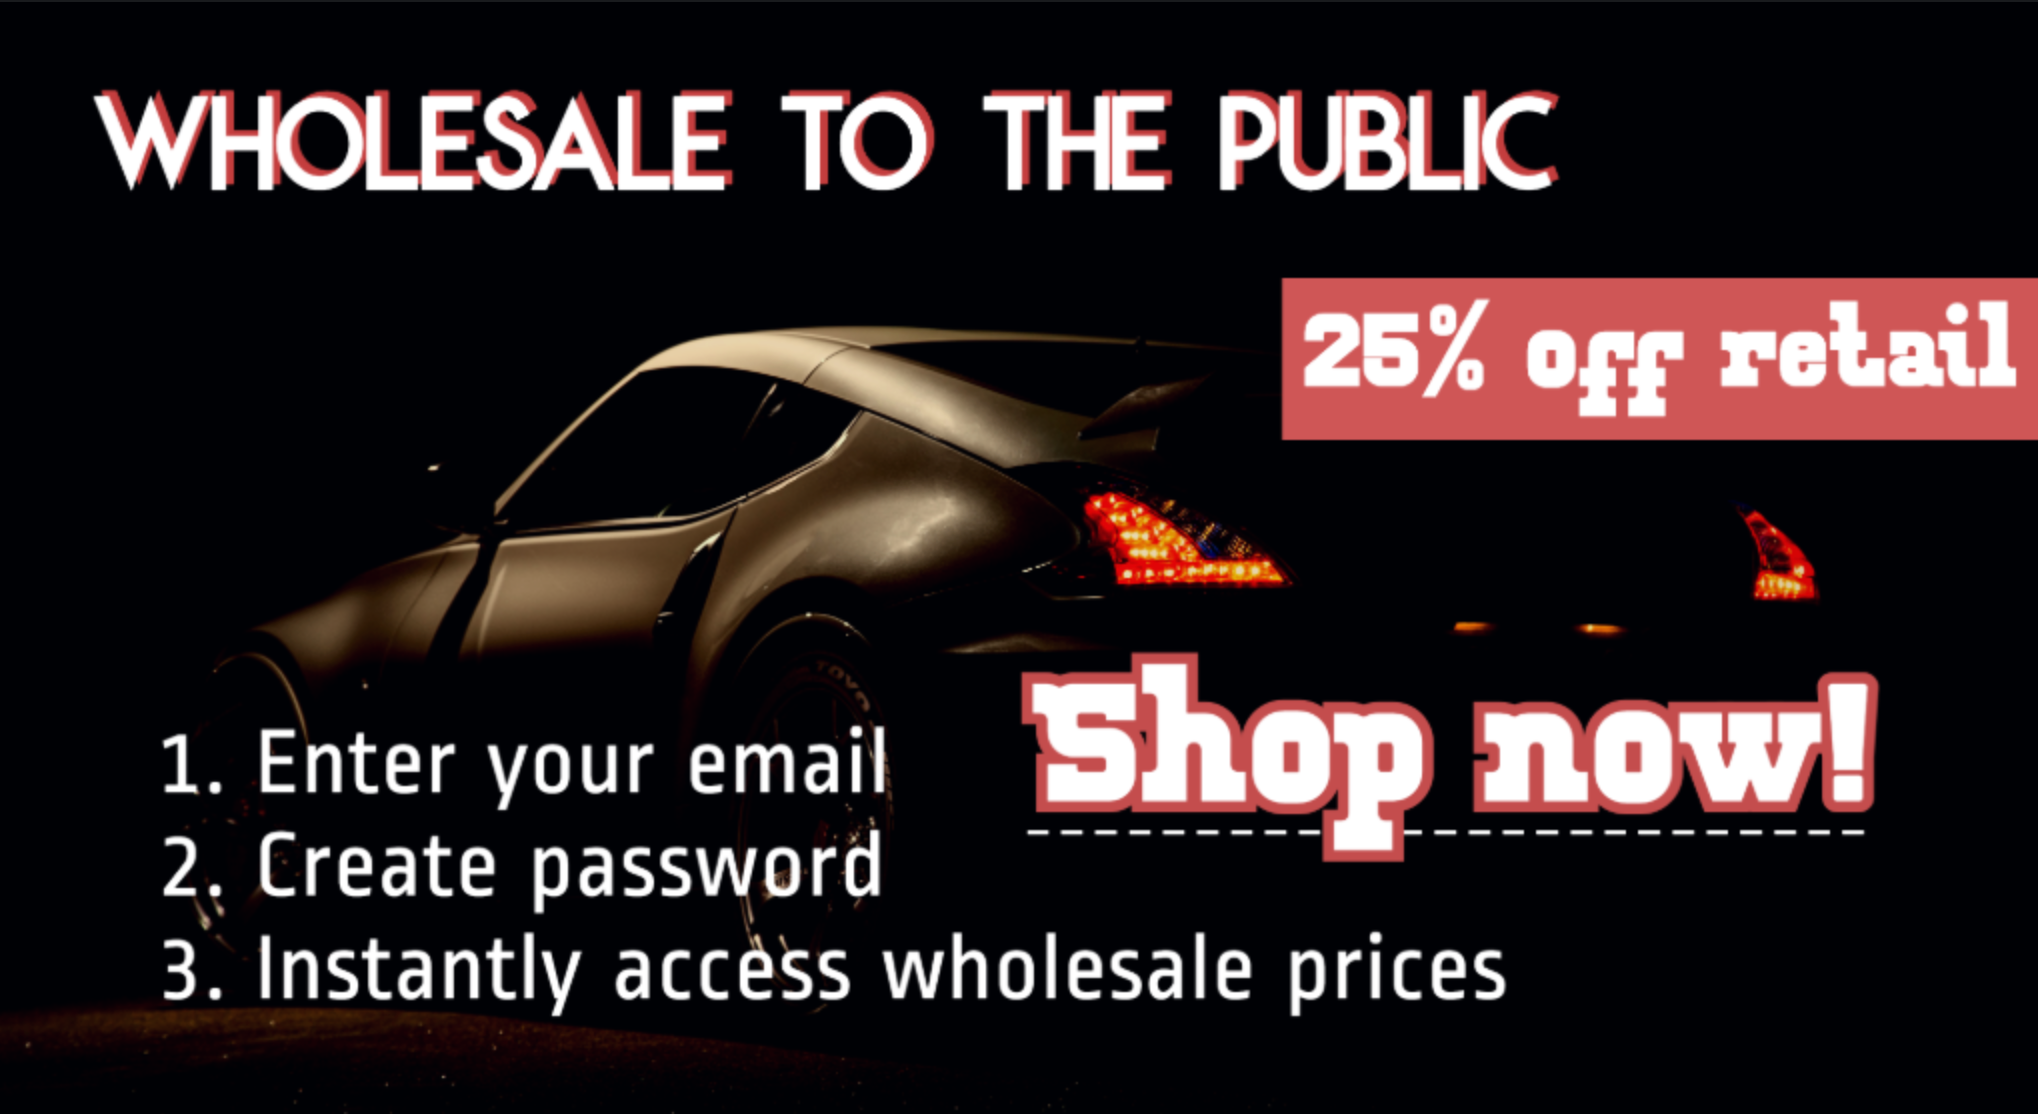 Wholesale to the public. 25% off retail. Create account to instantly access wholesale prices.